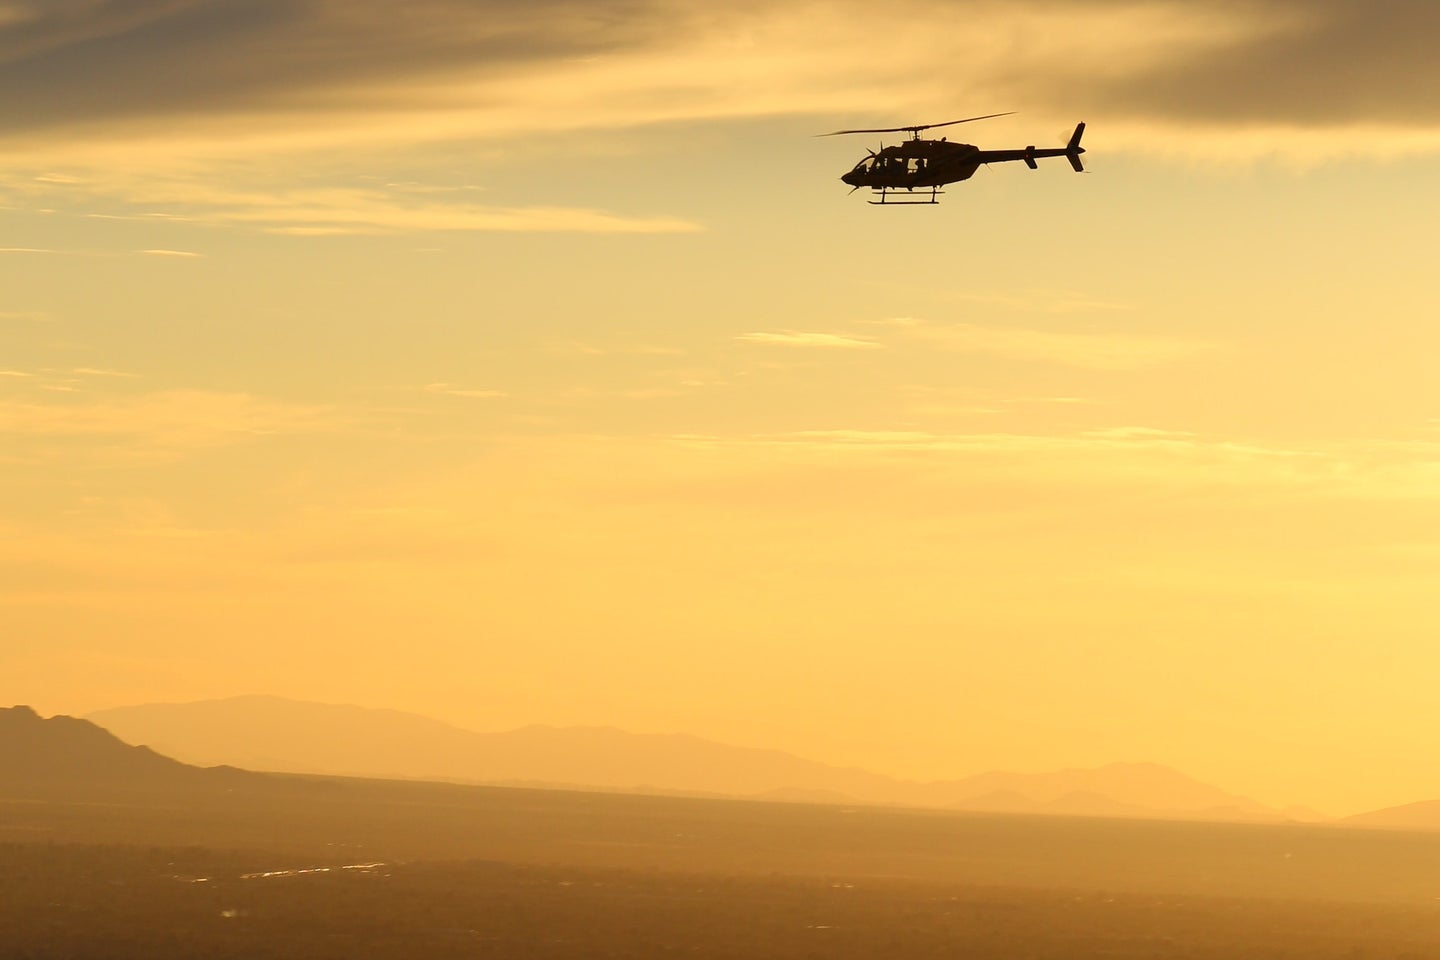 A helicopter flying at sunset.